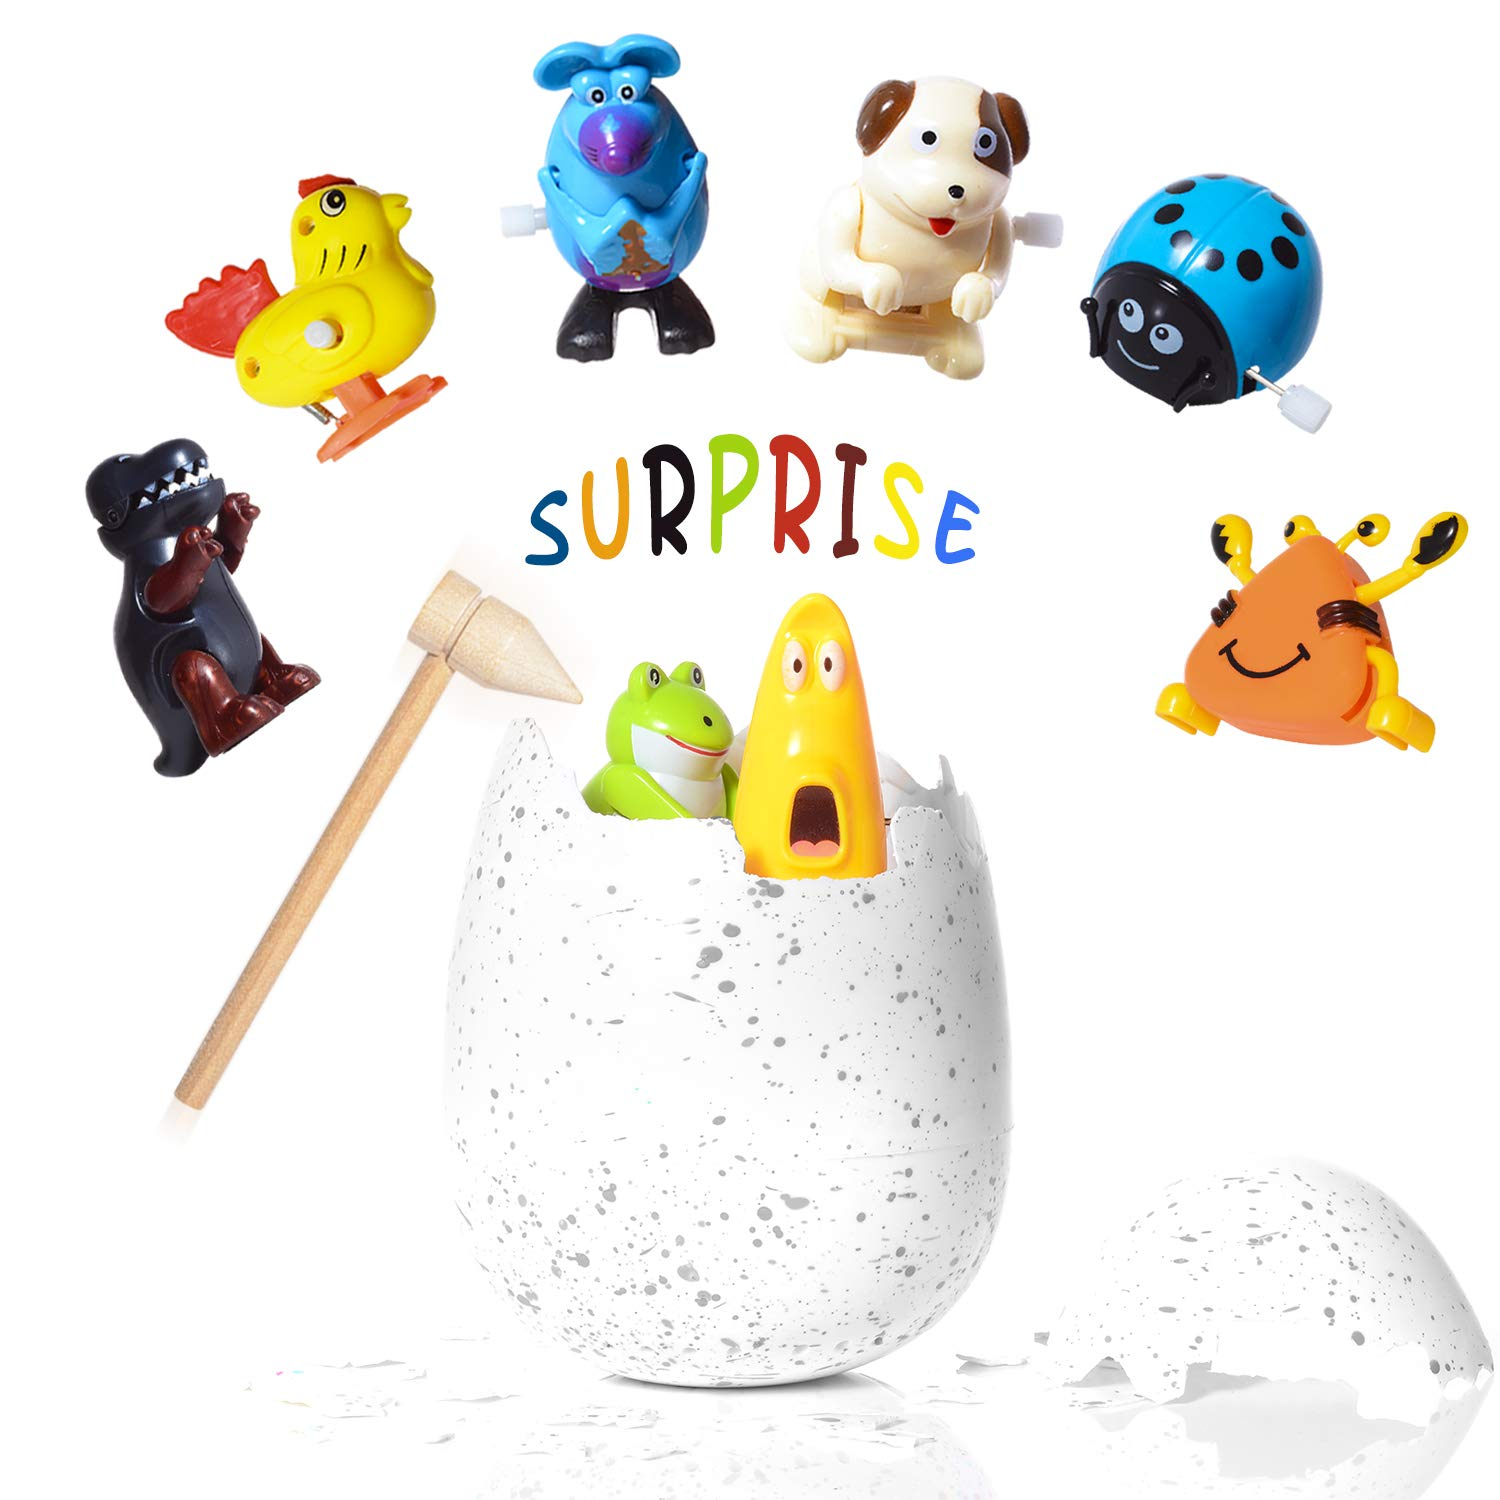 WishaLife Hatchimal Surprise Hatching Egg - Set of 8 Wind Up Animals Toys for Kids Birthday Gifts Party Favor (Includes Mouse, Dog, Dinosaur, Chick, Frog, Ladybug, Crab, Larva, Wooden Hammer)